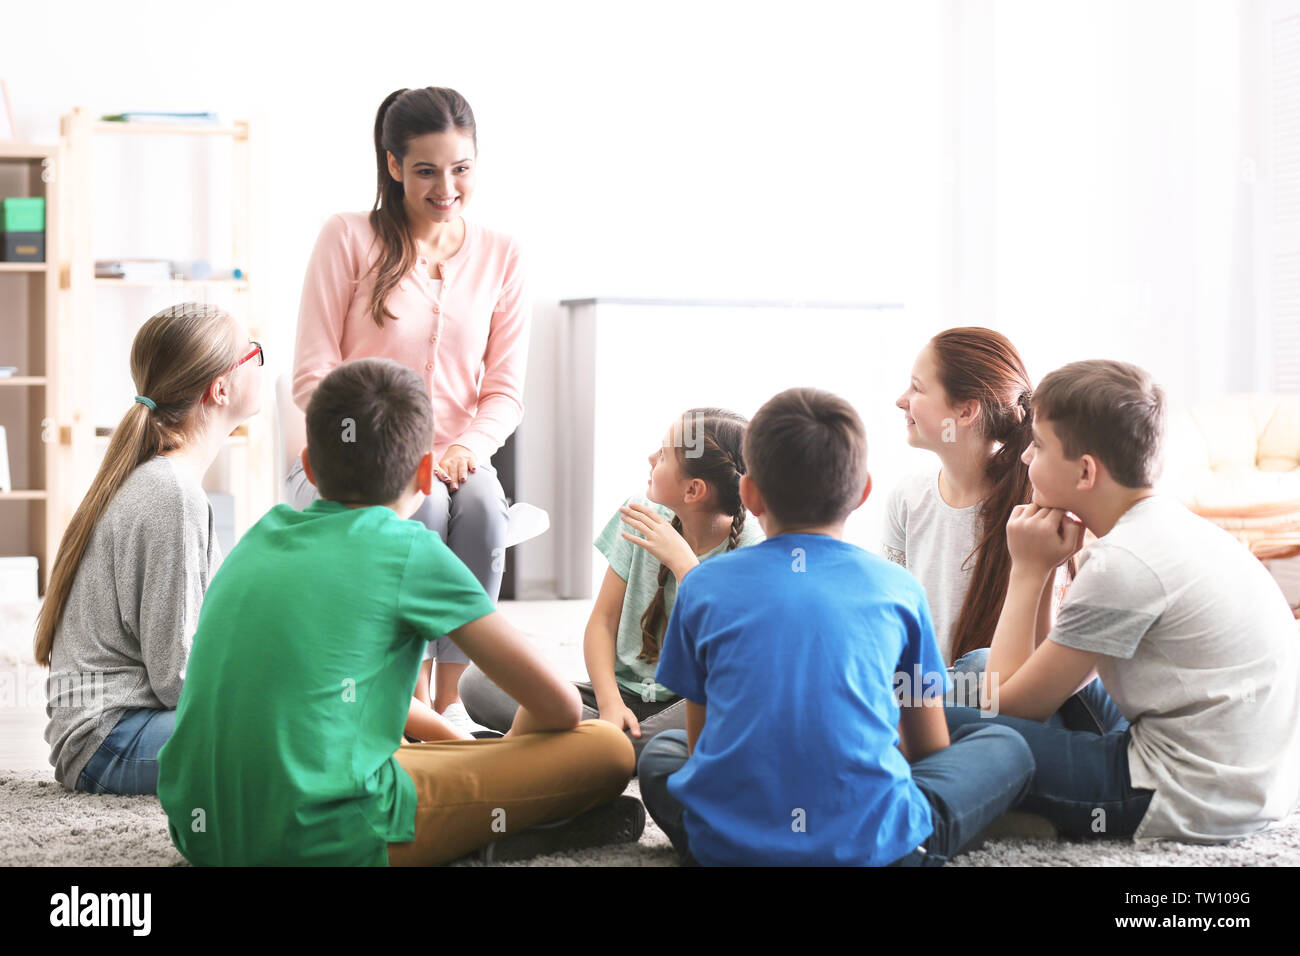 Female teacher conducting lesson at school - Stock Image